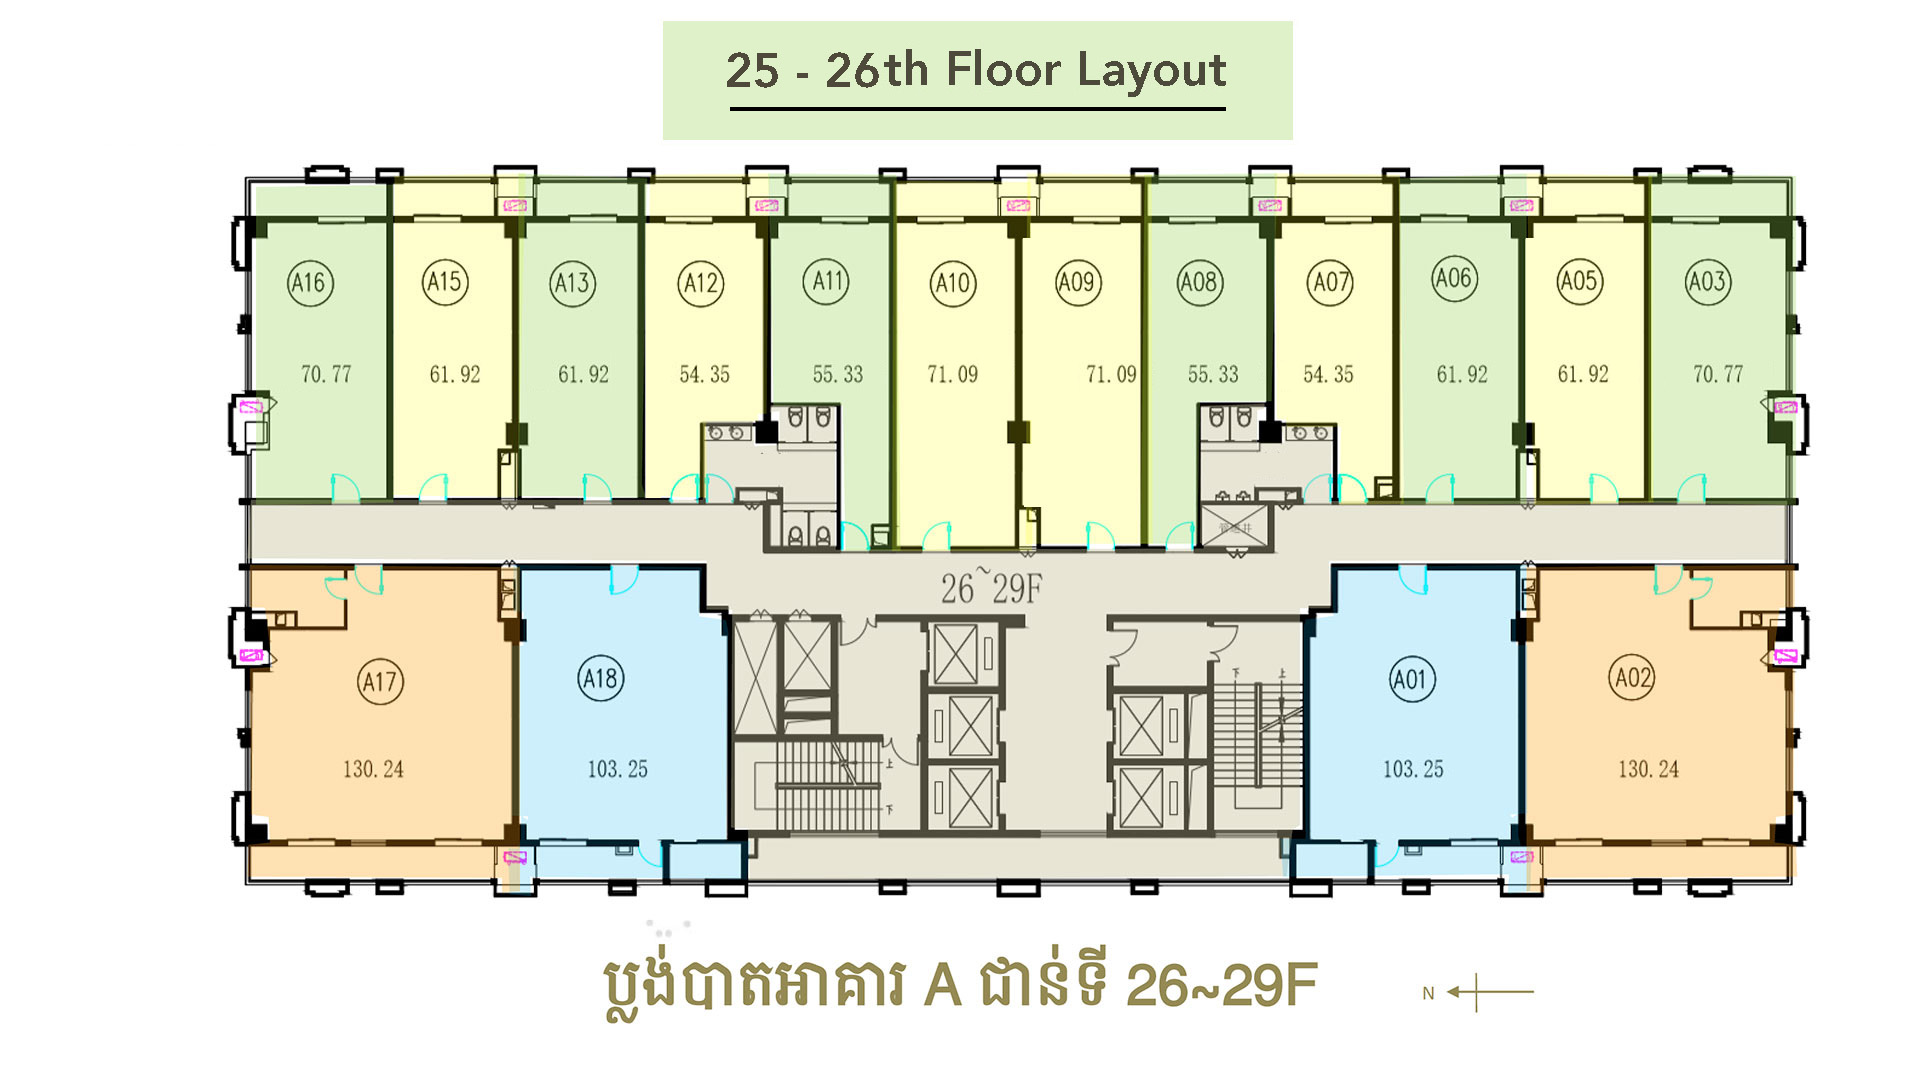 The Parkway - Office Space Floor Layout of 26 - 29th Floor